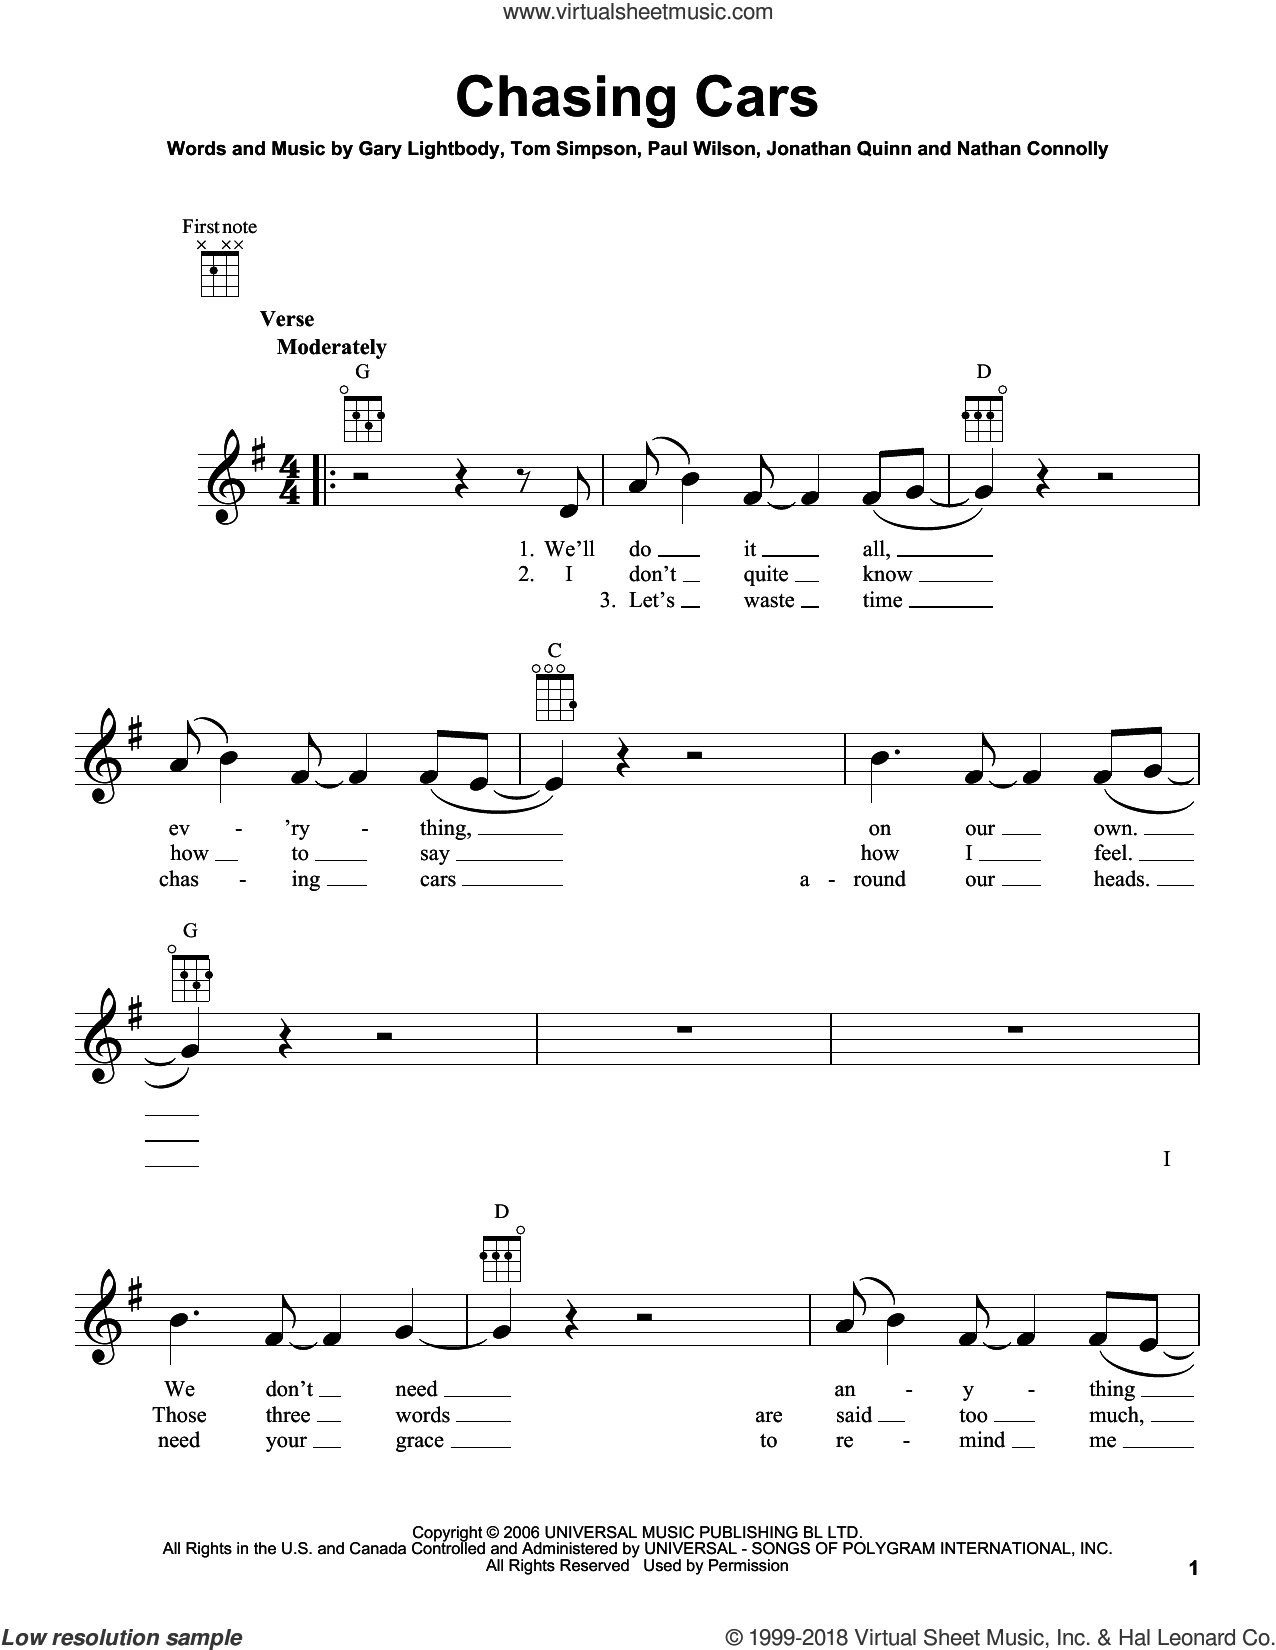 Chasing Cars sheet music for ukulele by Snow Patrol, Gary Lightbody, Jonathan Quinn, Nathan Connolly, Paul Wilson and Tom Simpson, wedding score, intermediate skill level